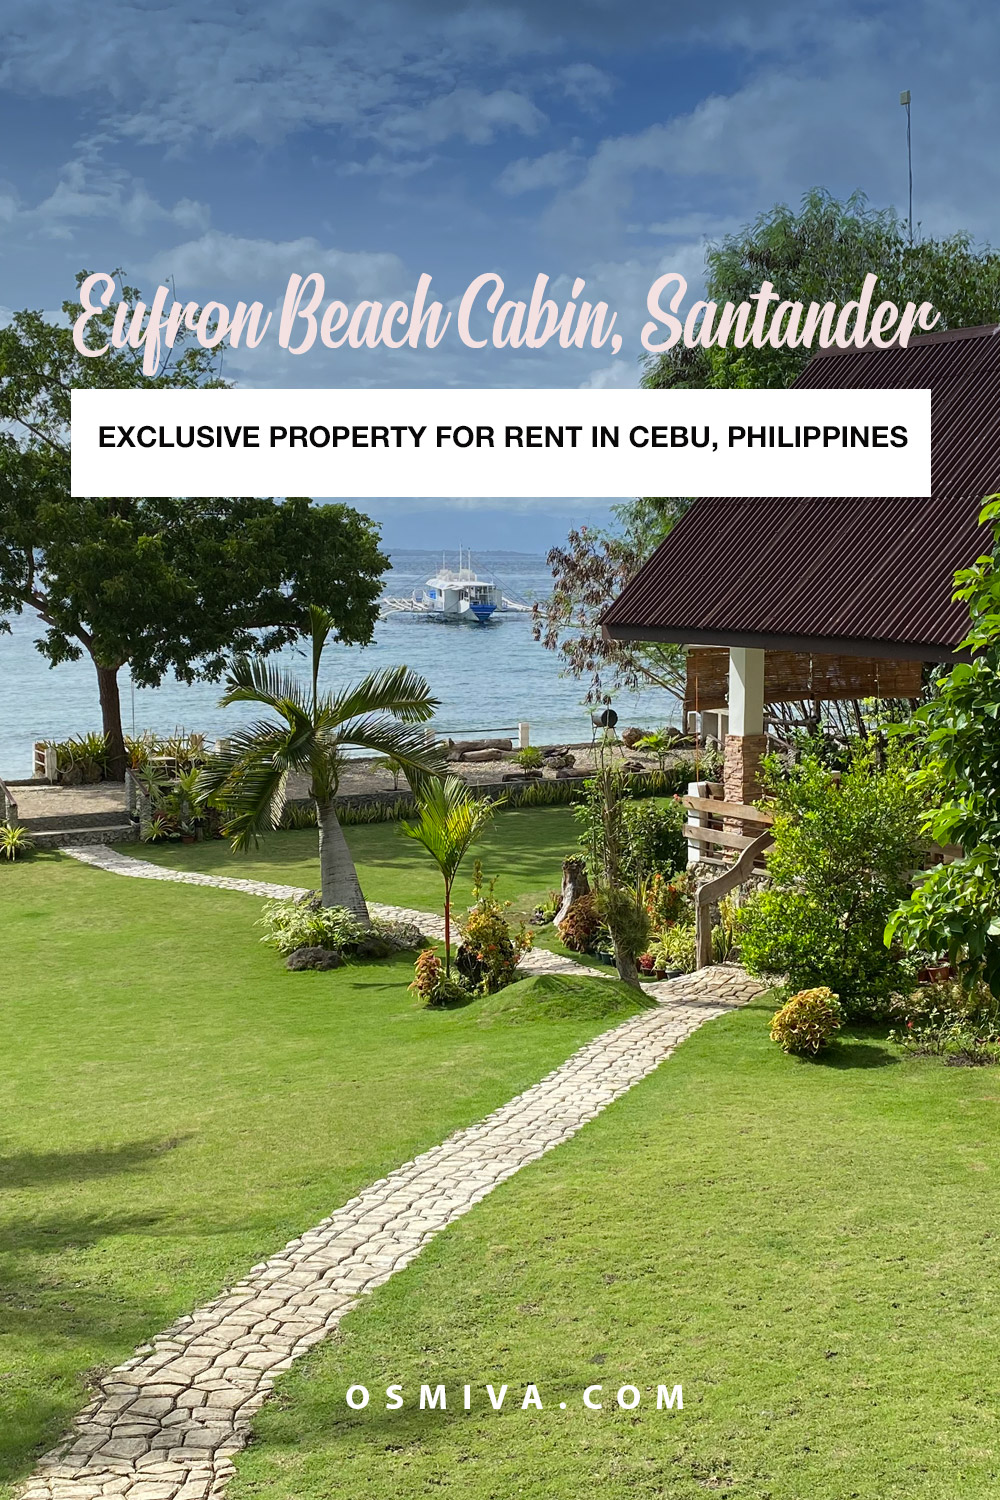 Relaxing Family Staycation at the Eufron Beach Cabin in Santander, Cebu. A nice exclusive beach property for families and big groups. Family staycation in Southern Cebu. #eufronbeachcabin #exclusiveproperty #houseforrent #familygetaway